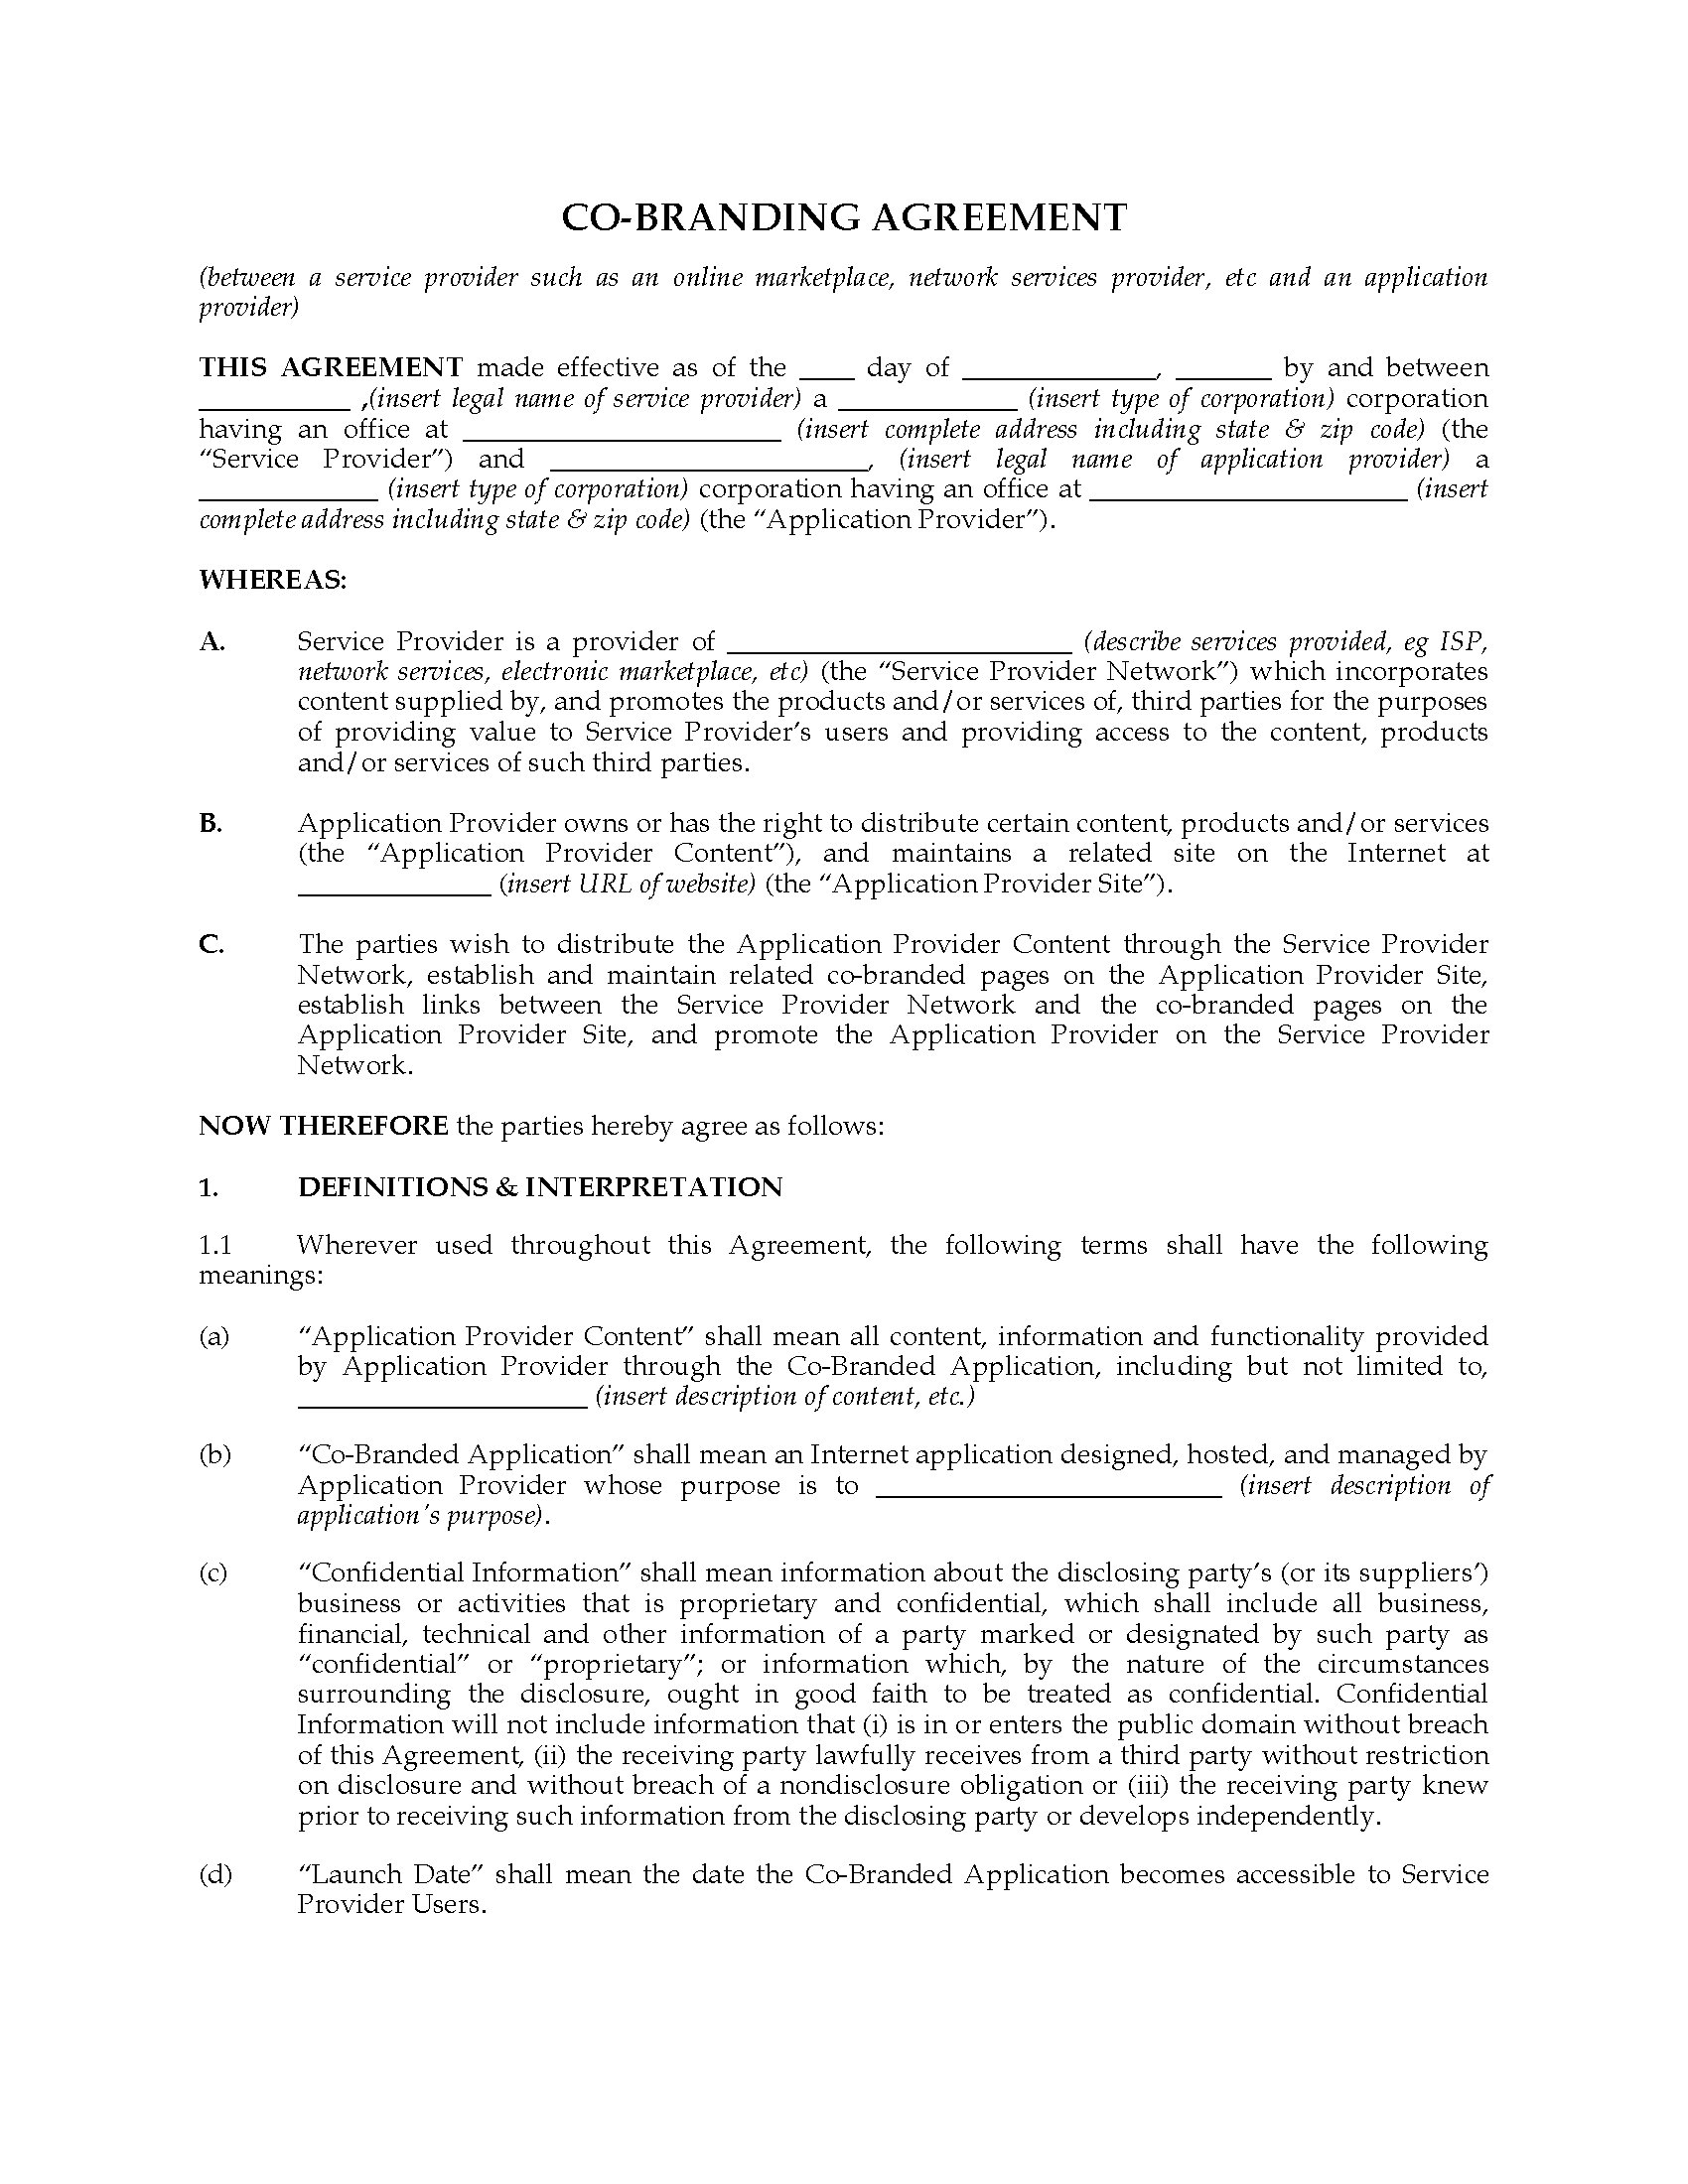 Usa Co Branding Agreement With Application Provider Legal Forms